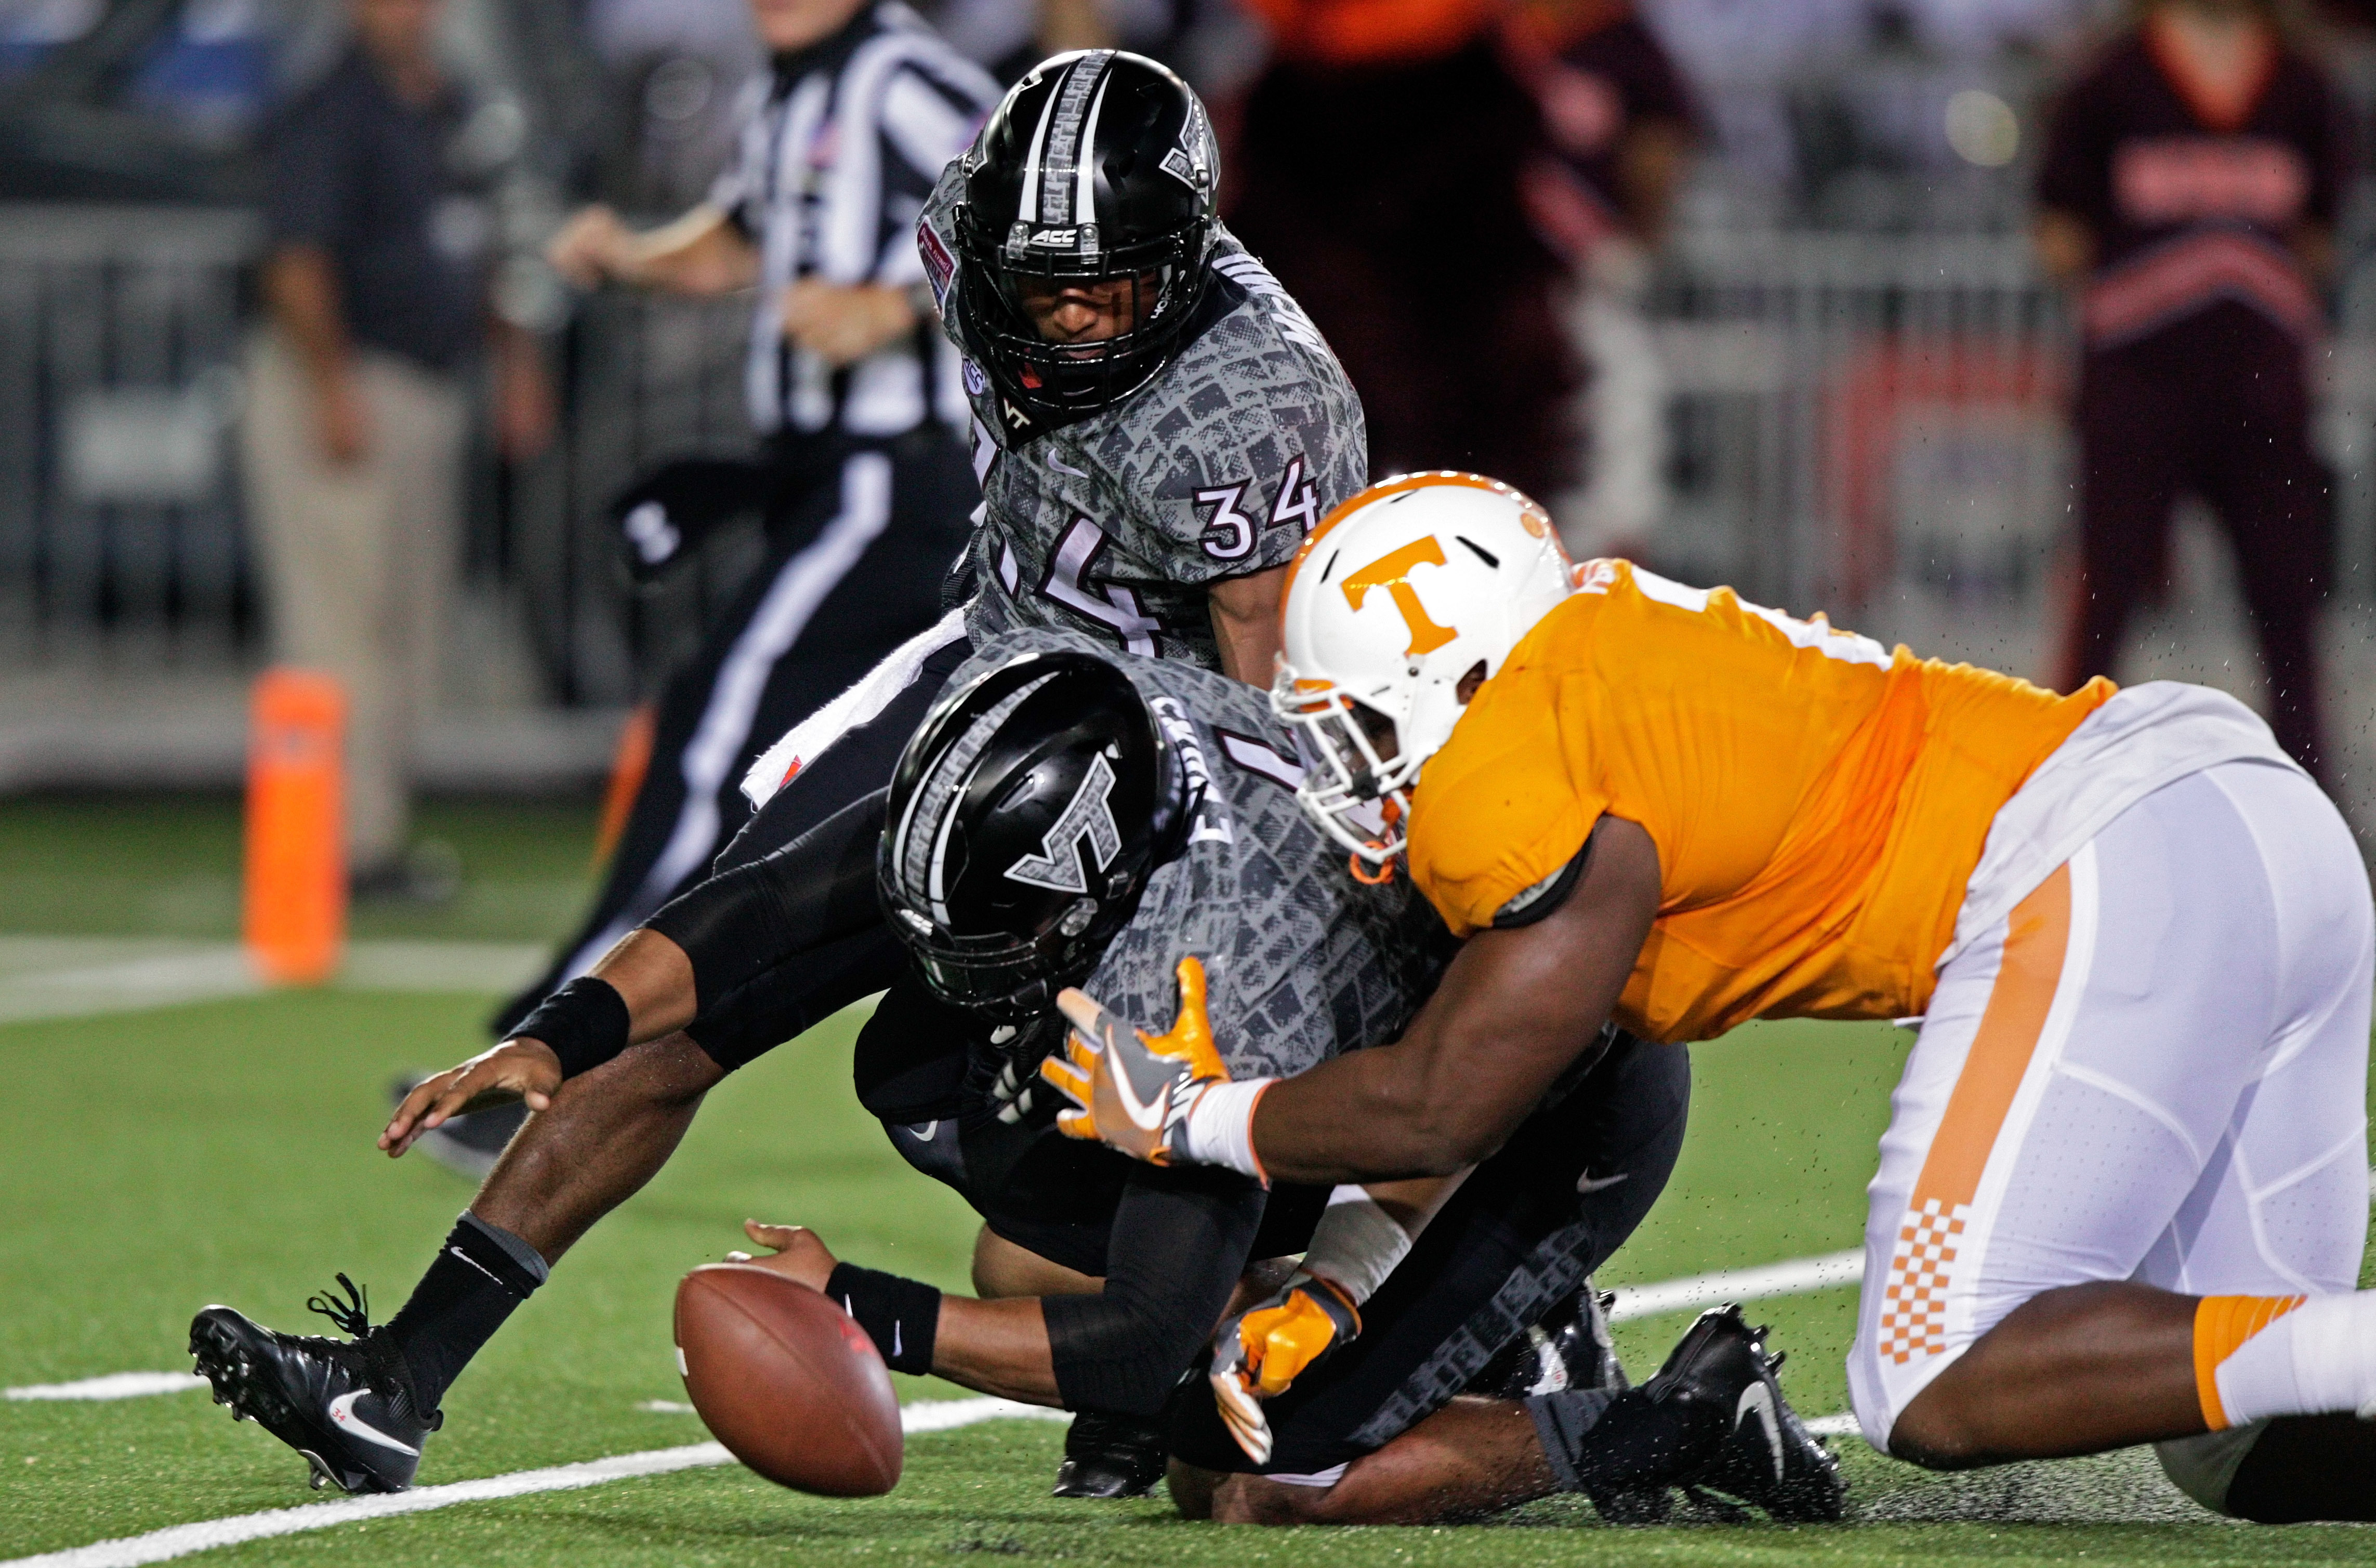 FILE- In this Saturday, Sept. 10, 2016, file photo,  Tennessee defensive lineman Shy Tuttle (2) and Virginia Tech wide receiver Isaiah Ford (1) and running back Travon McMillian (34) vie for a fumble during the second half of an NCAA college football game